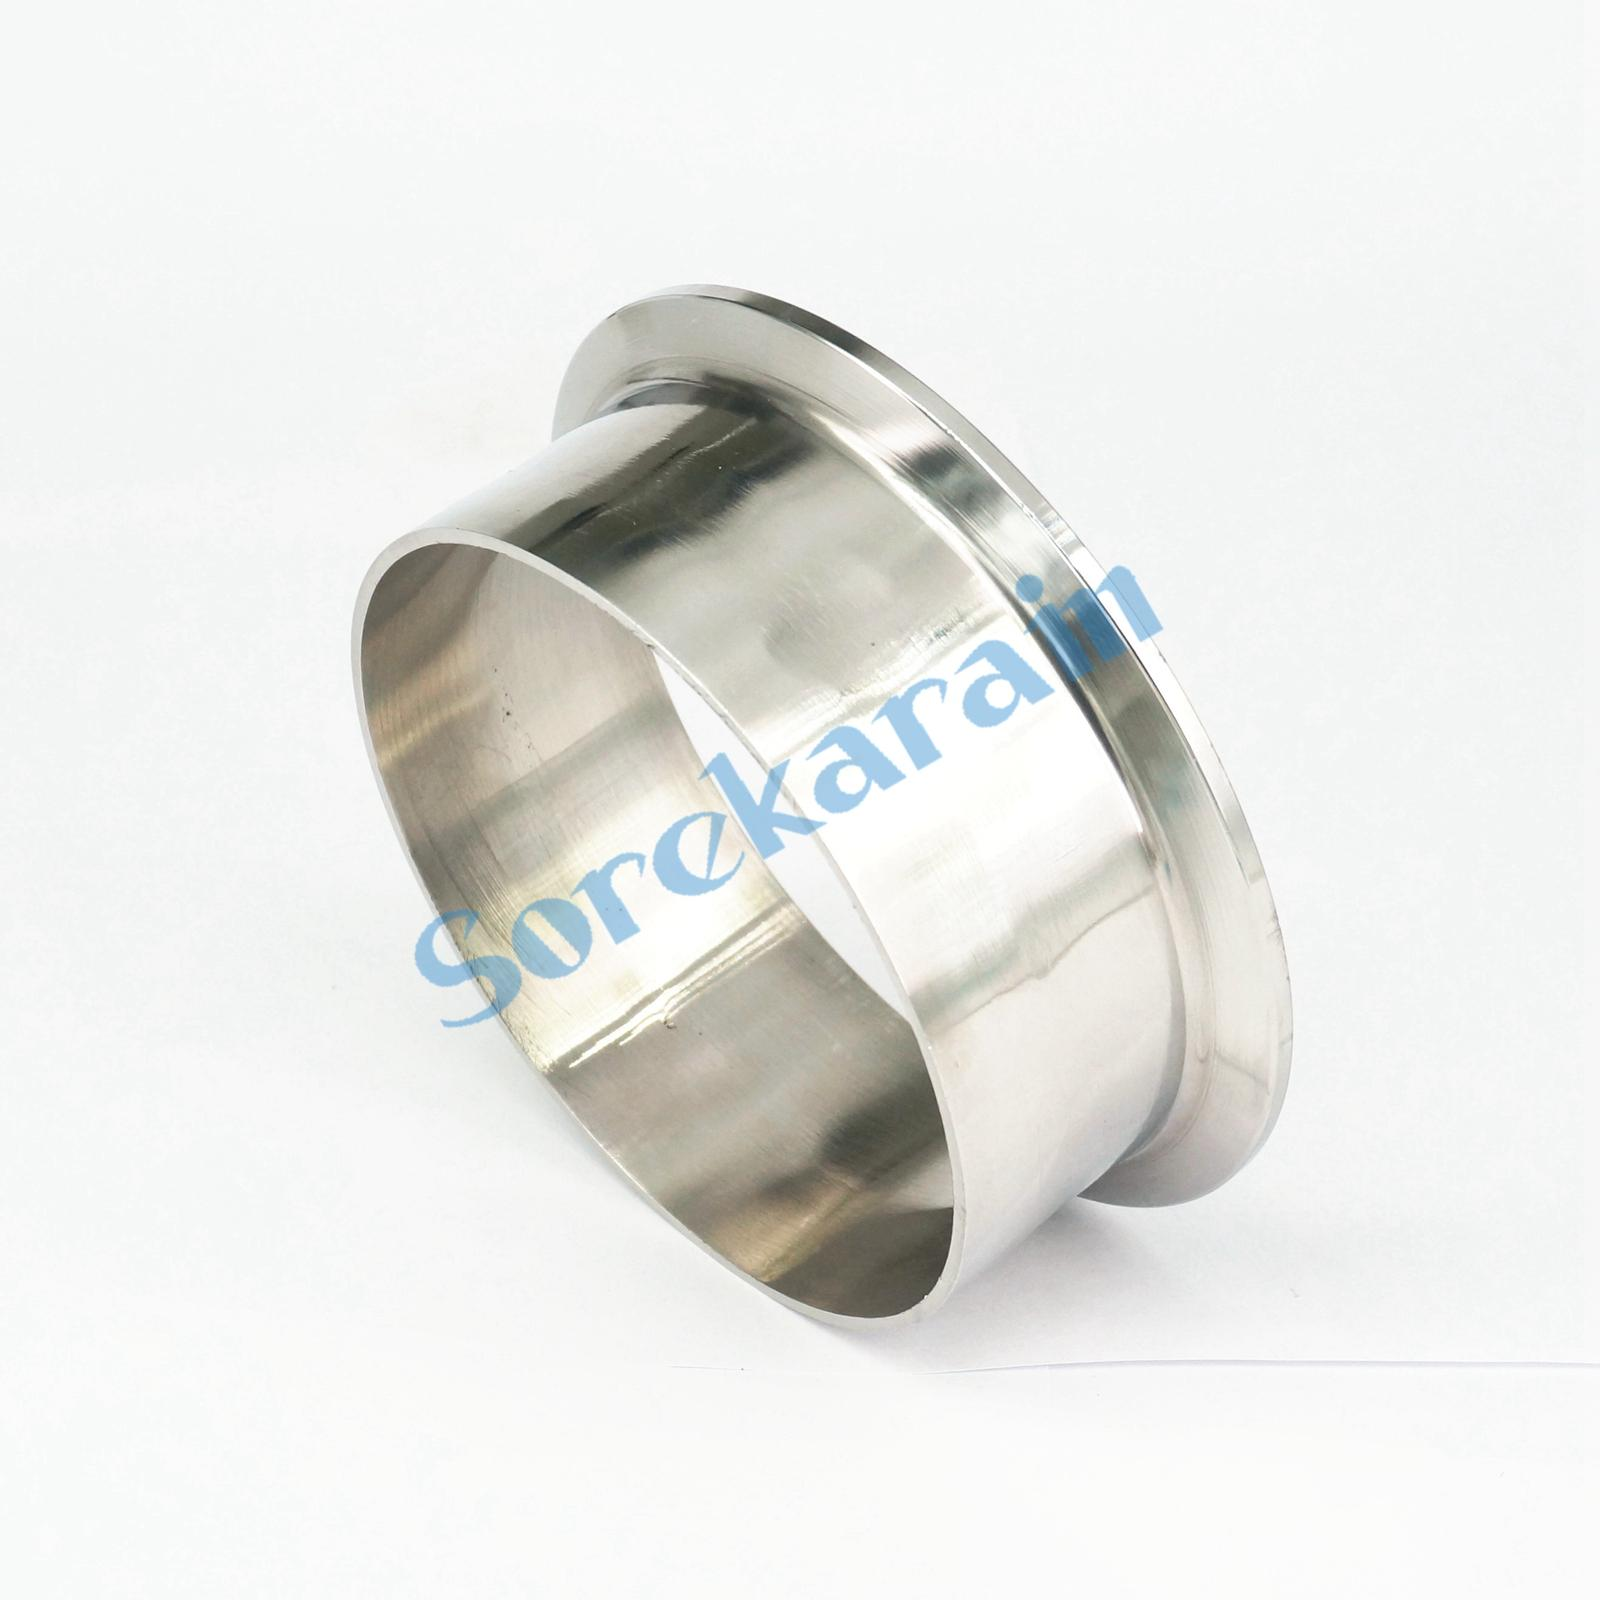 102mm Tube O/D x 4 Tri Clamp x 40mm Height 304 Stainless Steel Sanitary Weld Ferrule Connector Pipe Fitting Home Brew Beer Wine 2pcs 1 2 npt male thread x 1 2 12 7mm od tube double ferrule tube fitting connector npt stainless steel 304